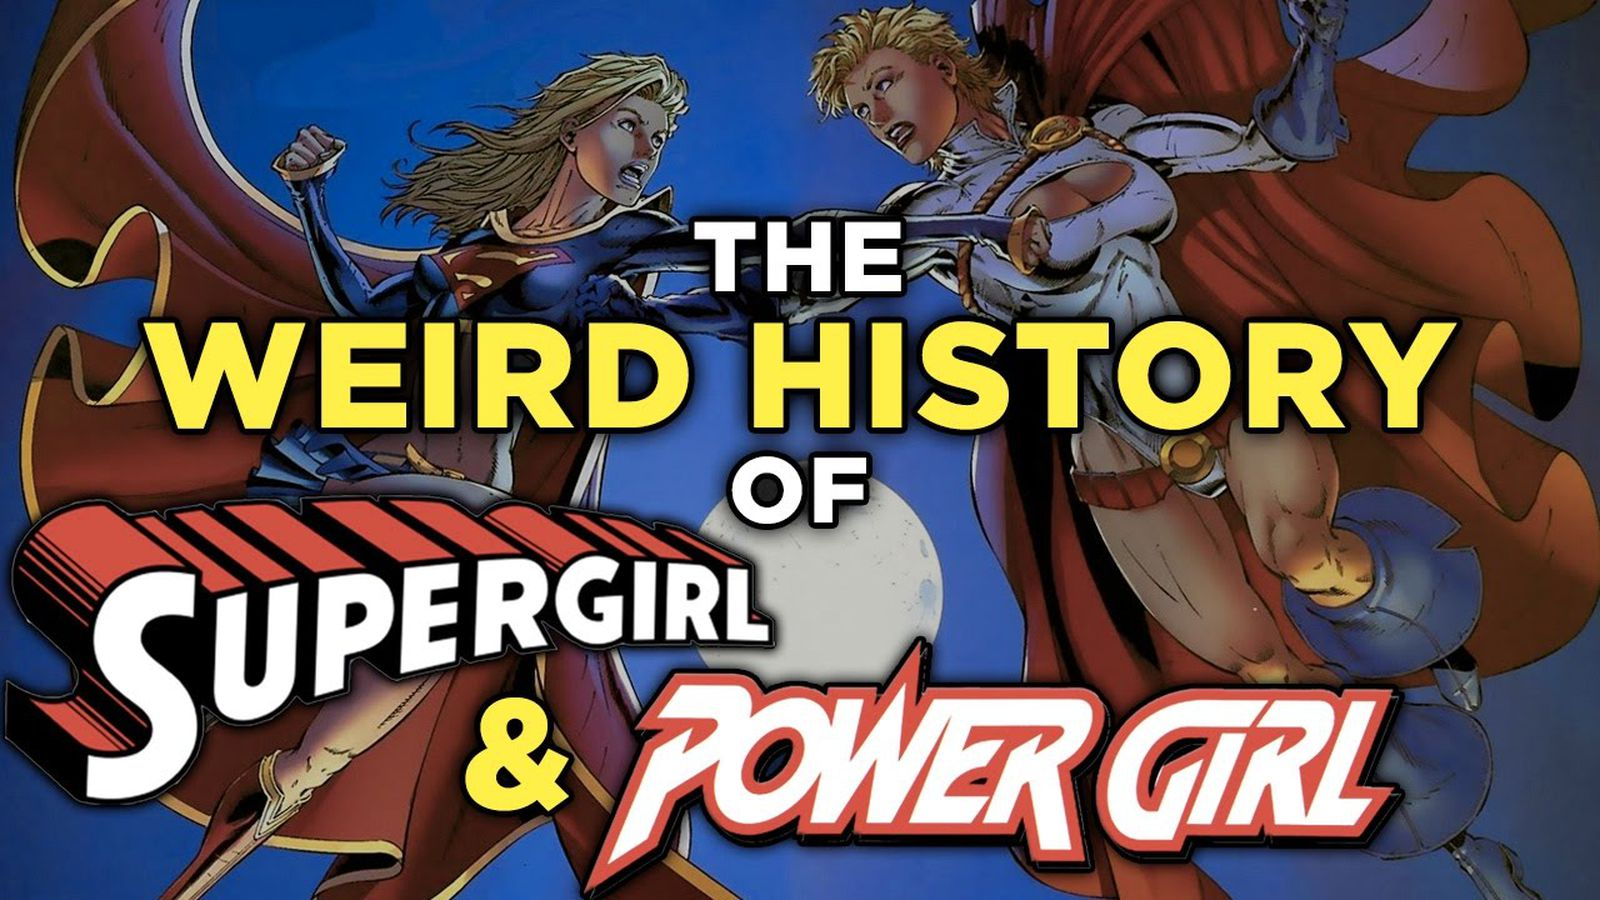 the history of supergirl and power girl is a perfect lens